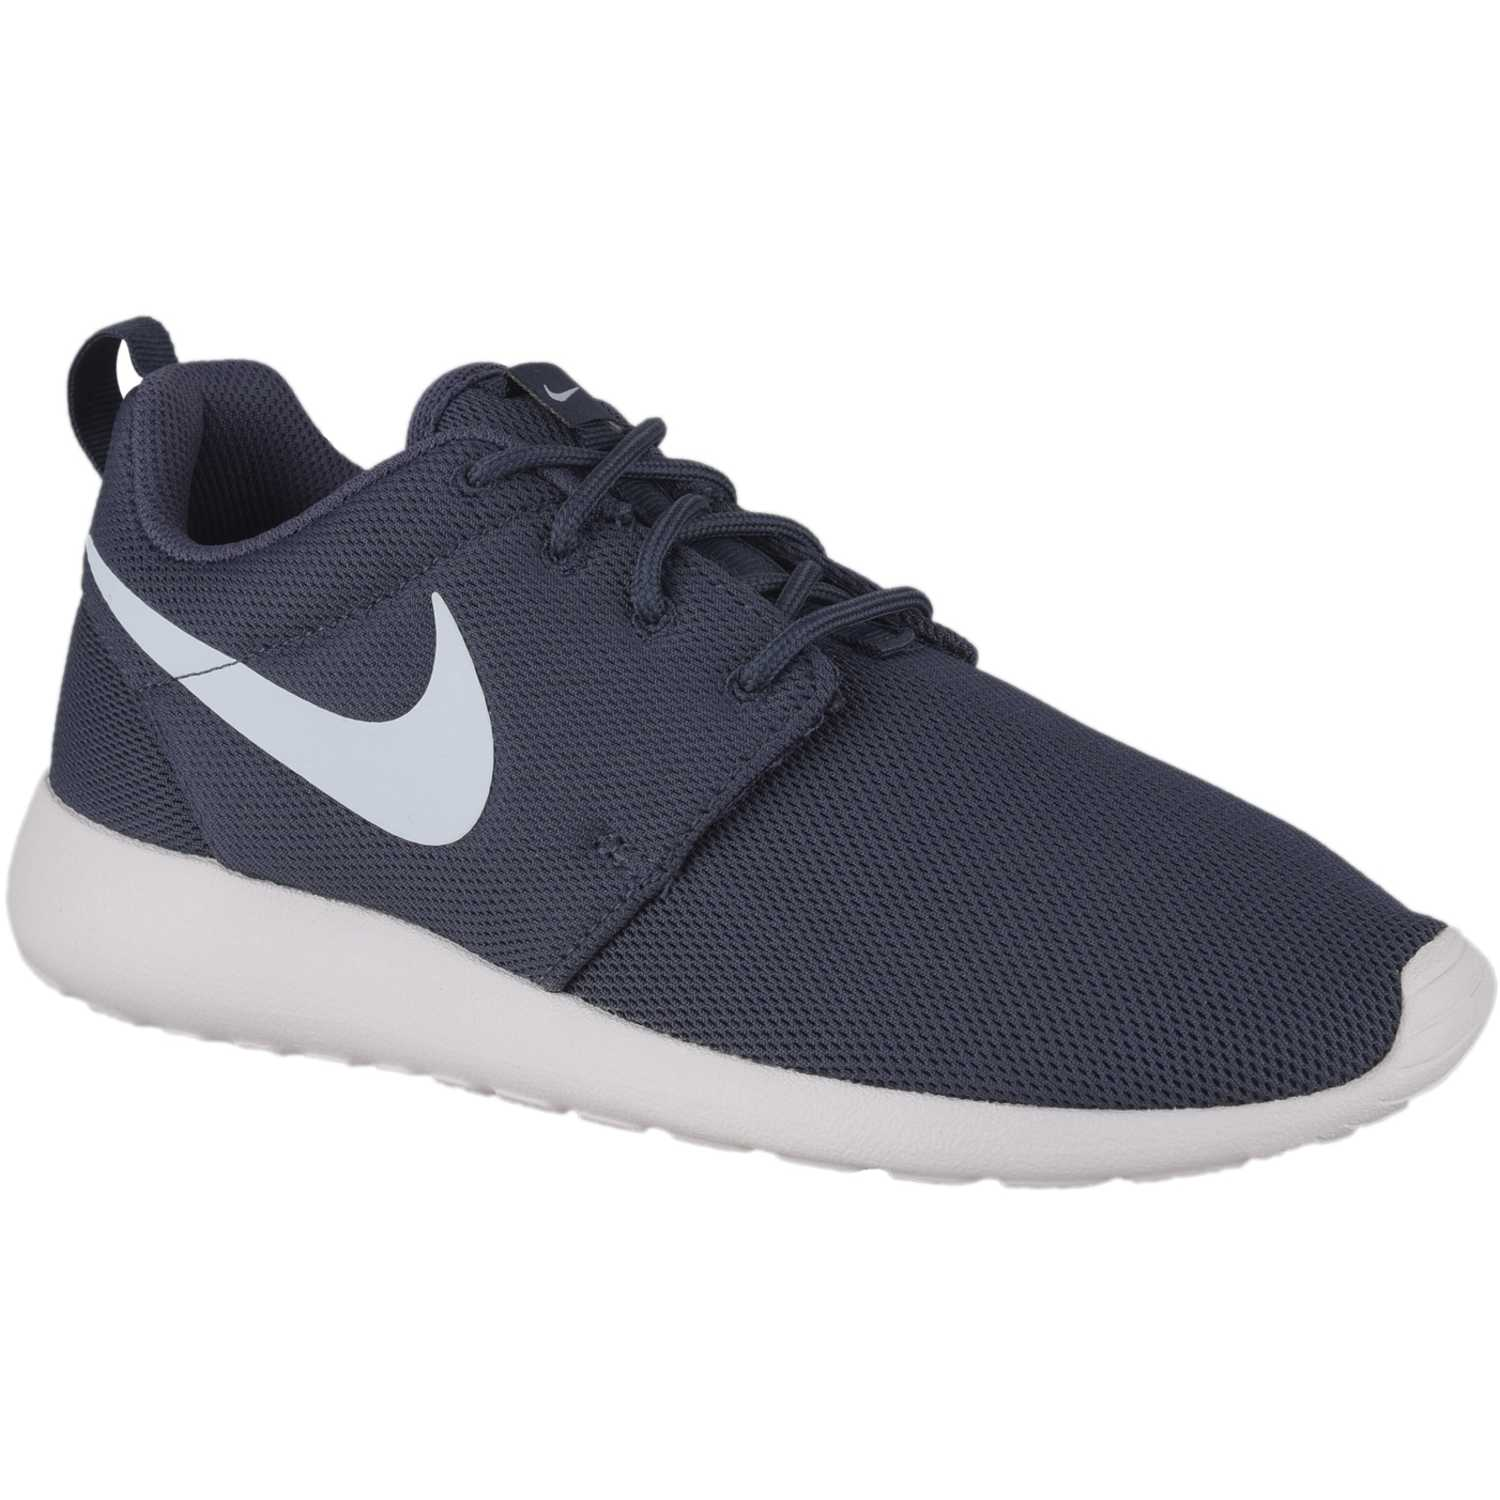 Casual de Mujer Nike Acero wmns nike roshe one